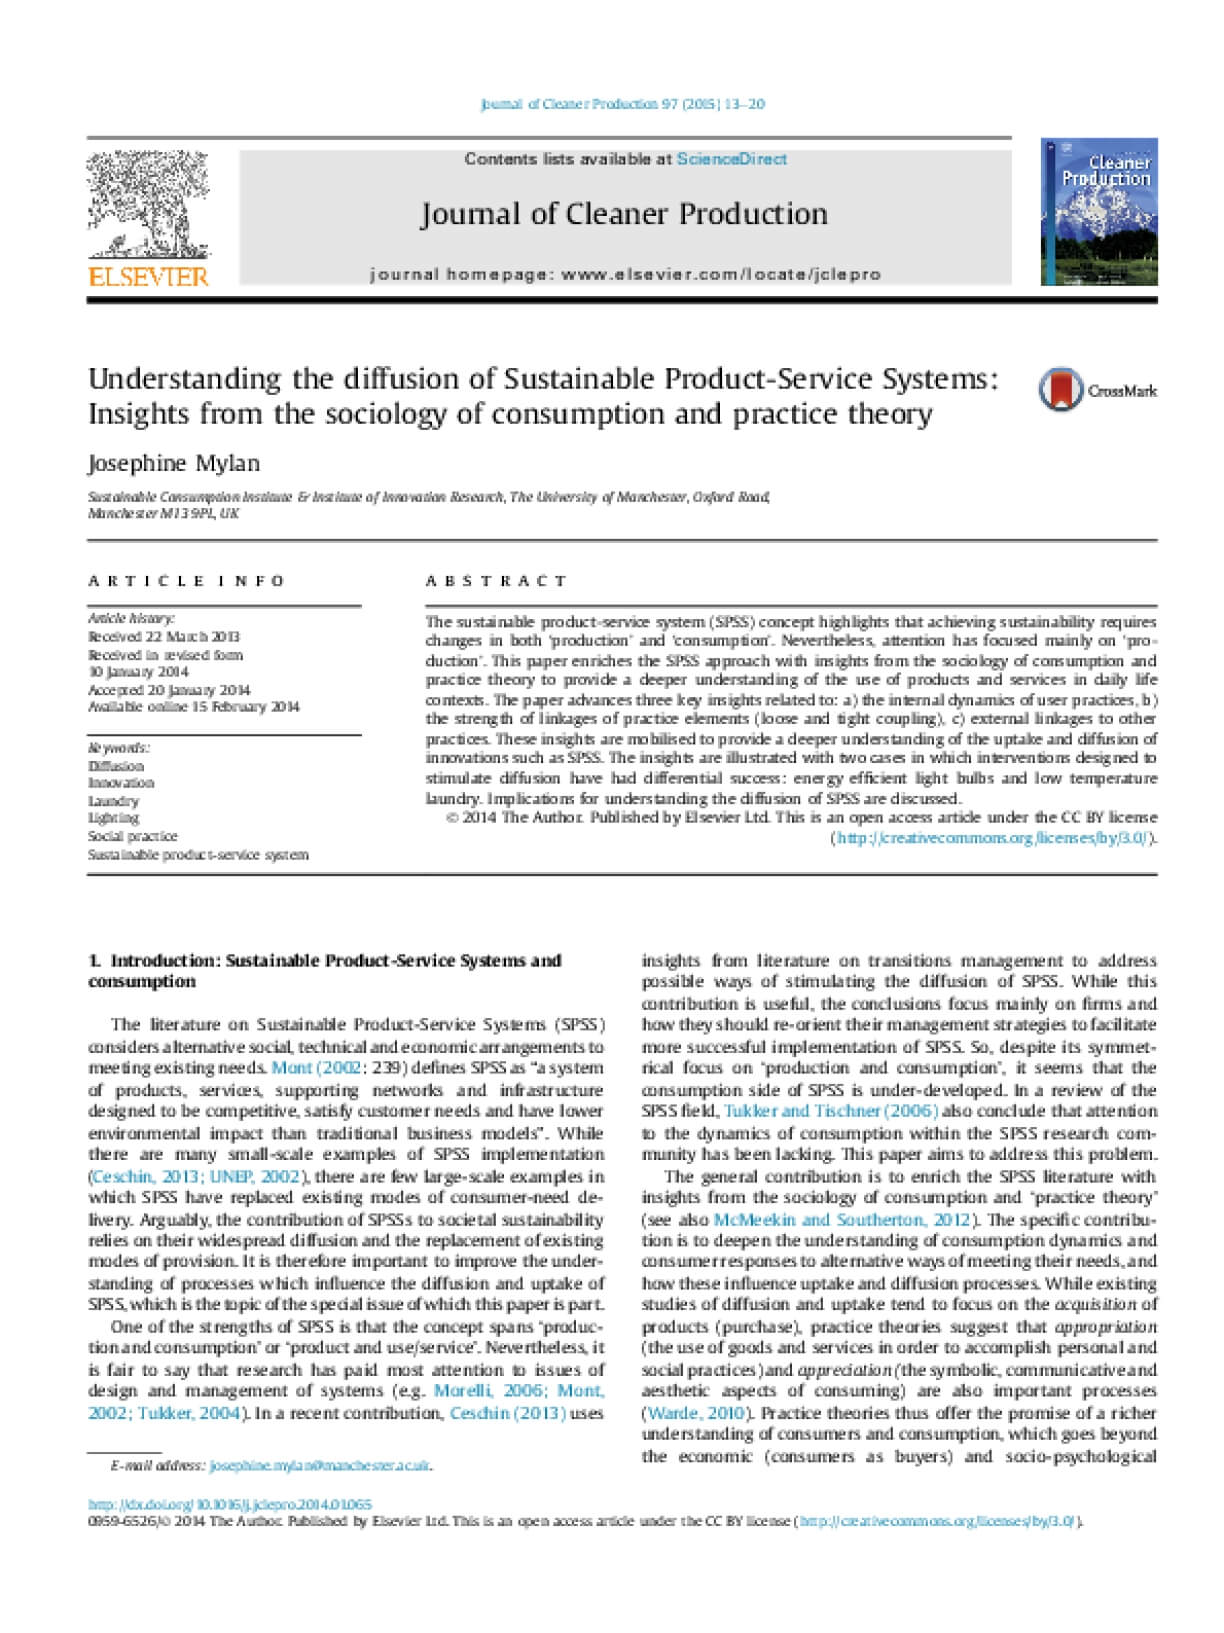 Understanding the Diffusion of Sustainable Product-Service Systems: Insights From the Sociology of Consumption and Practice Theory